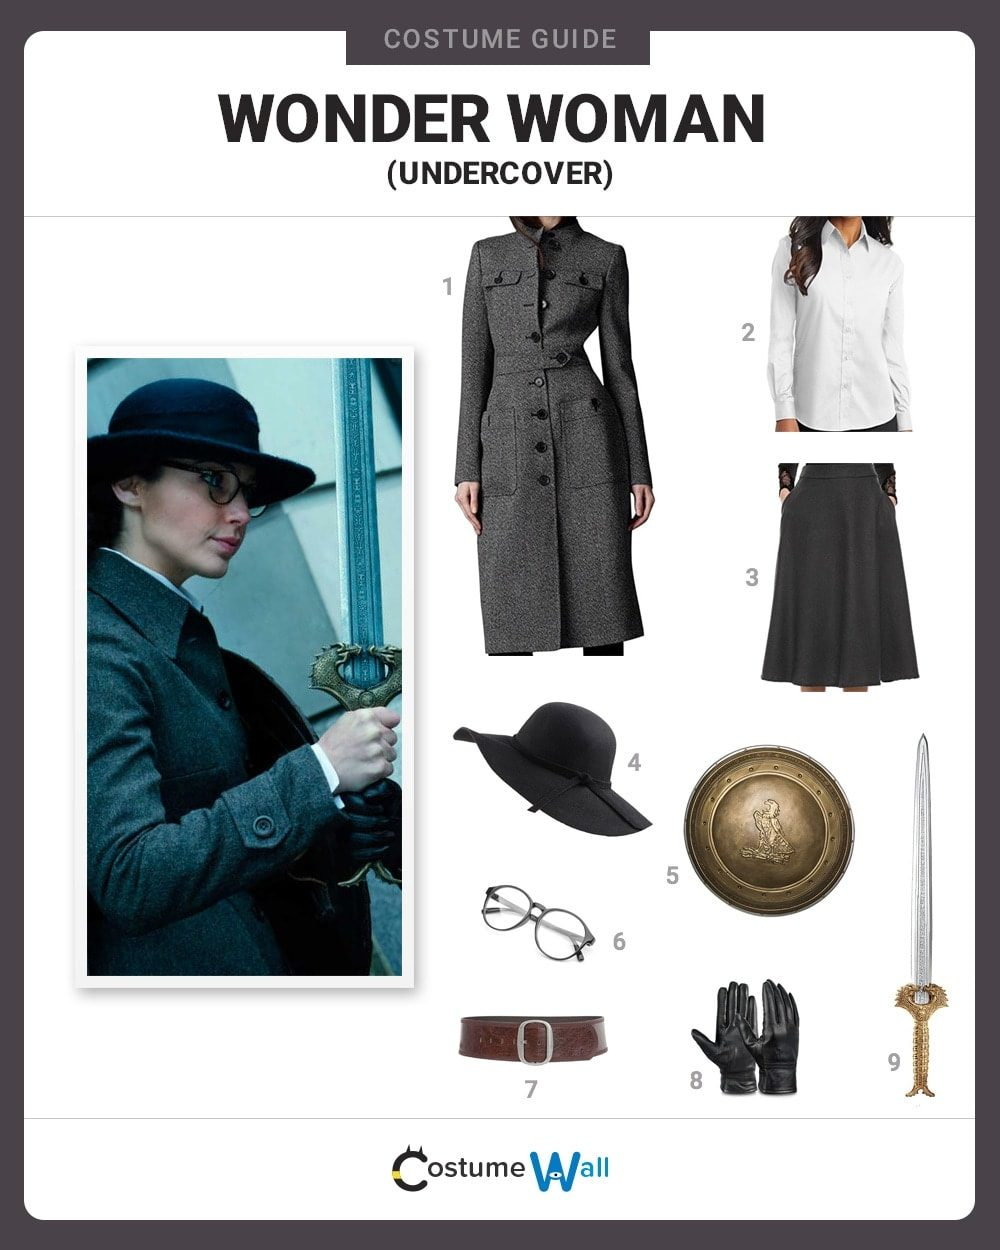 Wonder Woman (Undercover) Costume Guide